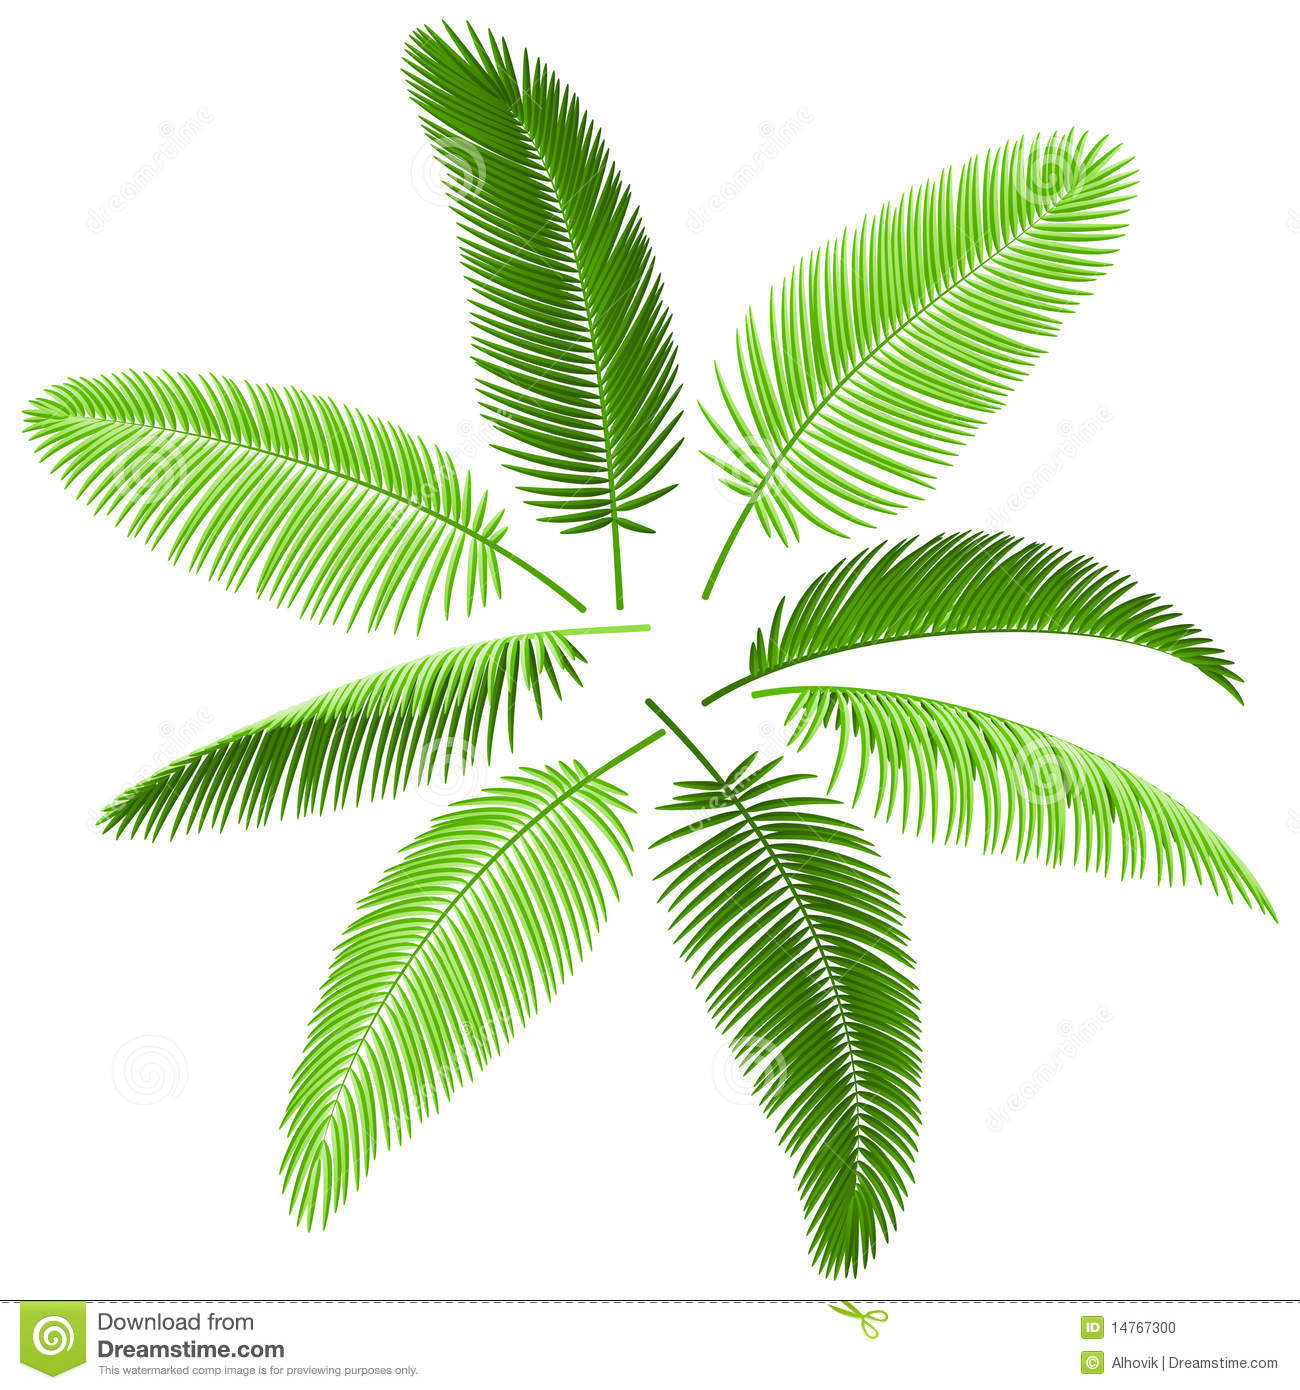 Vector illustration of a palm leaves. Make your own palm.